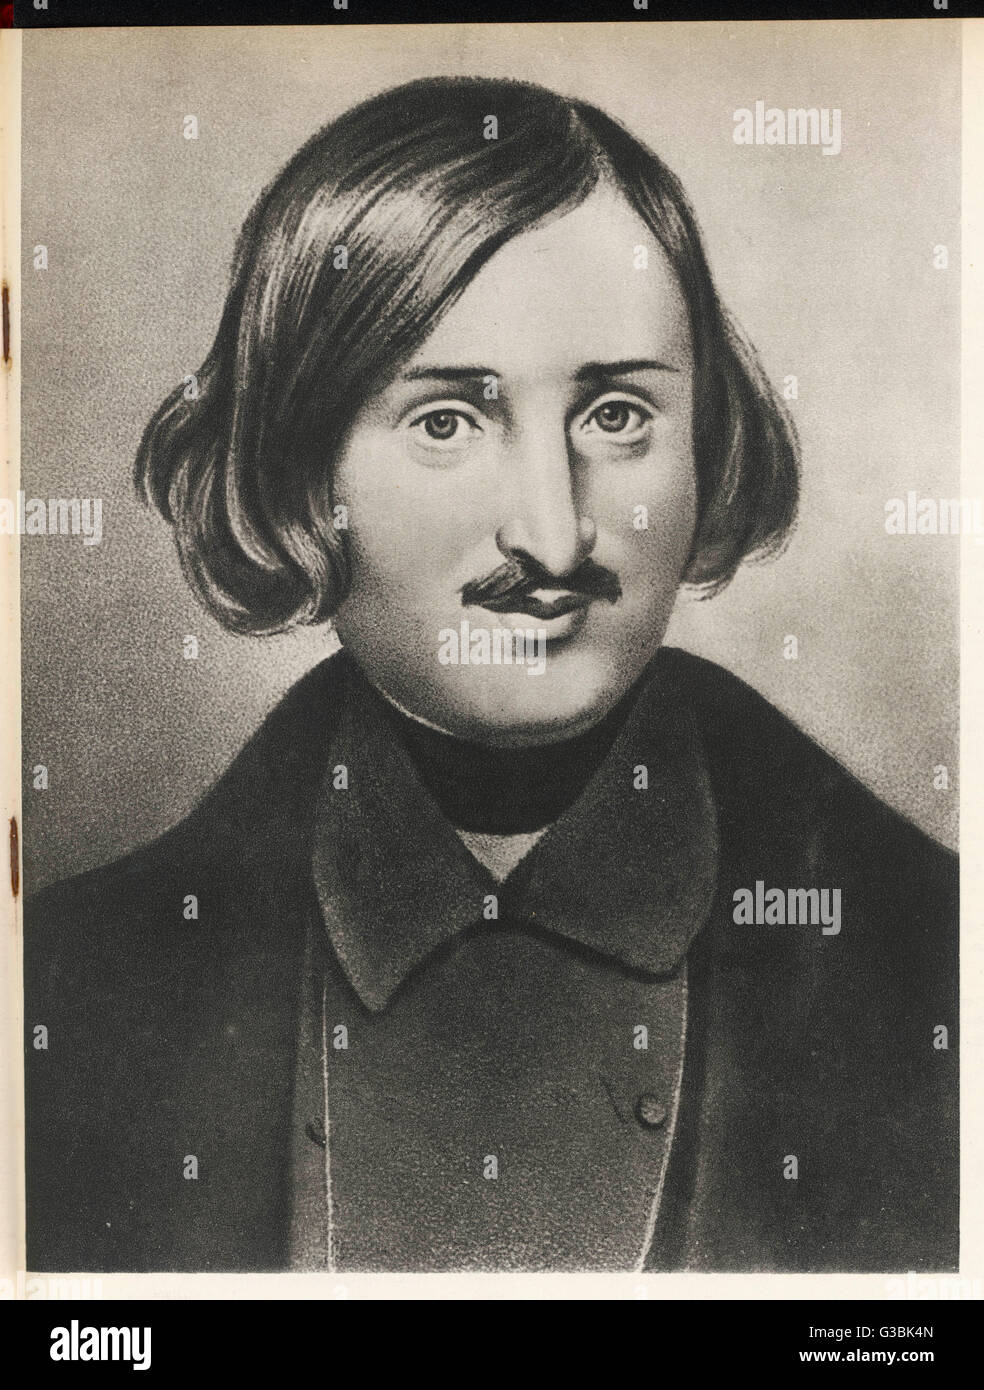 NIKOLAI VASILIEVICH GOGOL Russian writer, regarded as  the father of realism in  Russian literature : noted  for - Stock Image